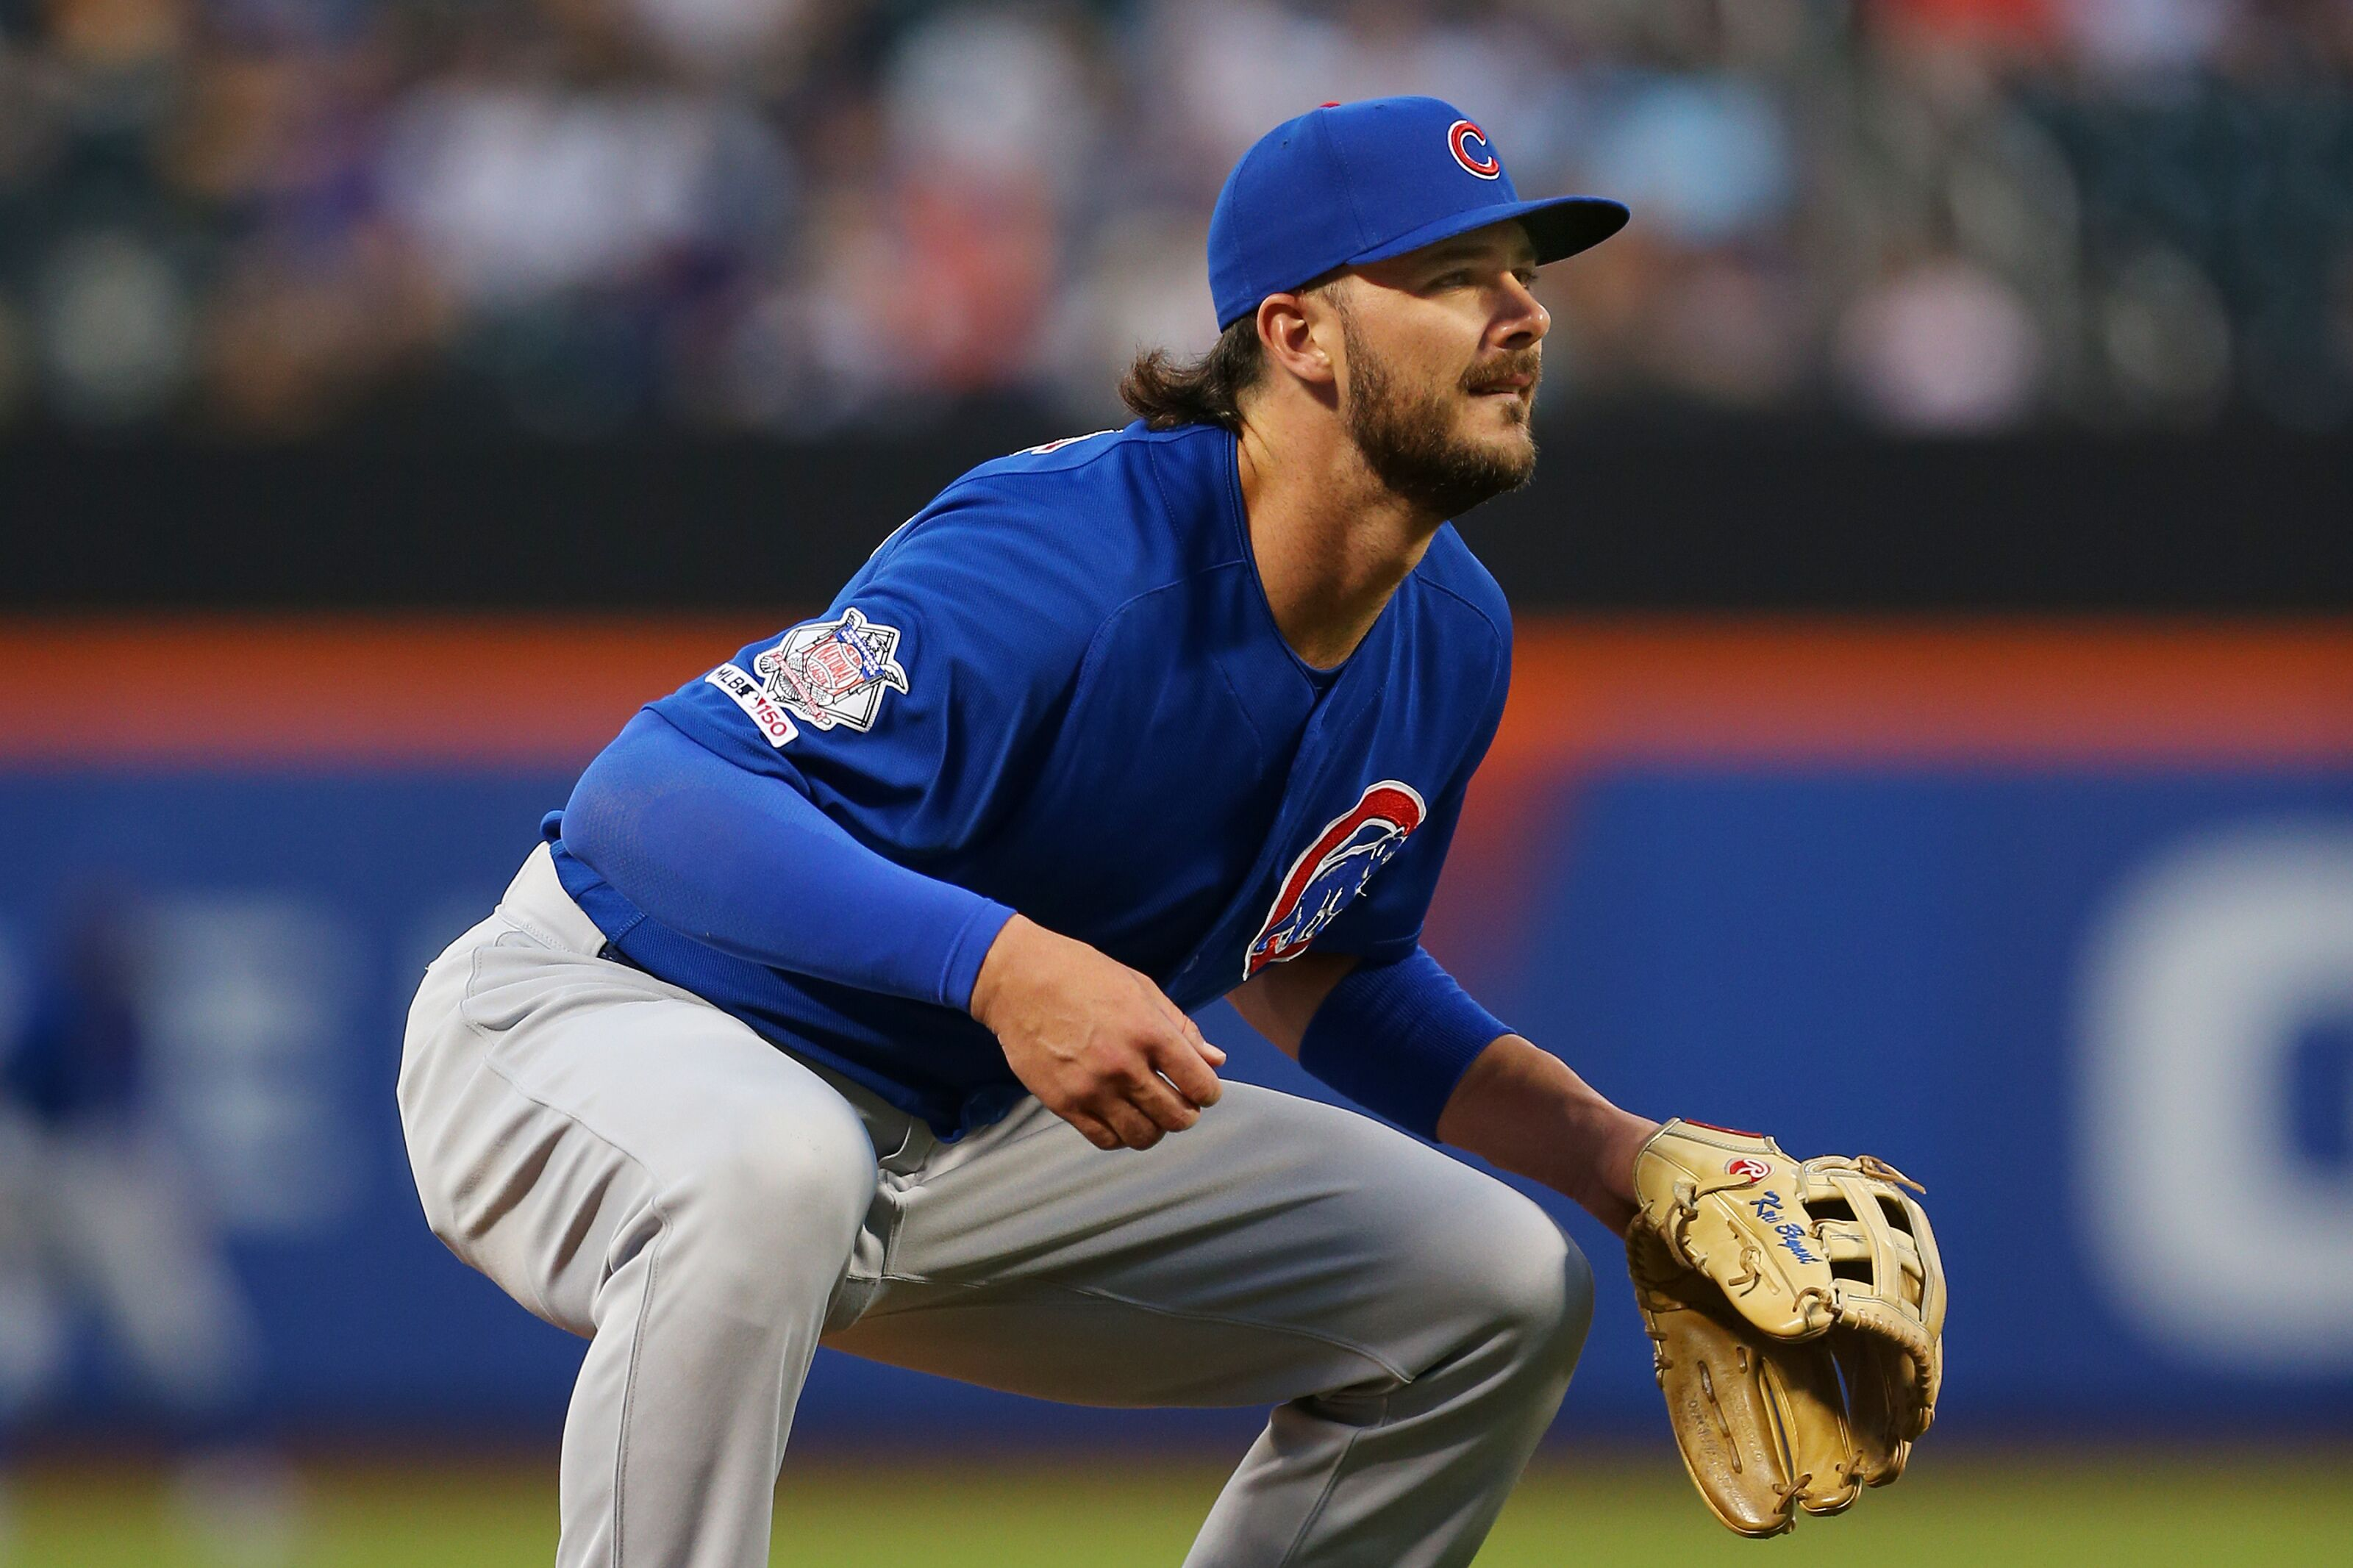 Chicago Cubs: Time for a careful rebuilding